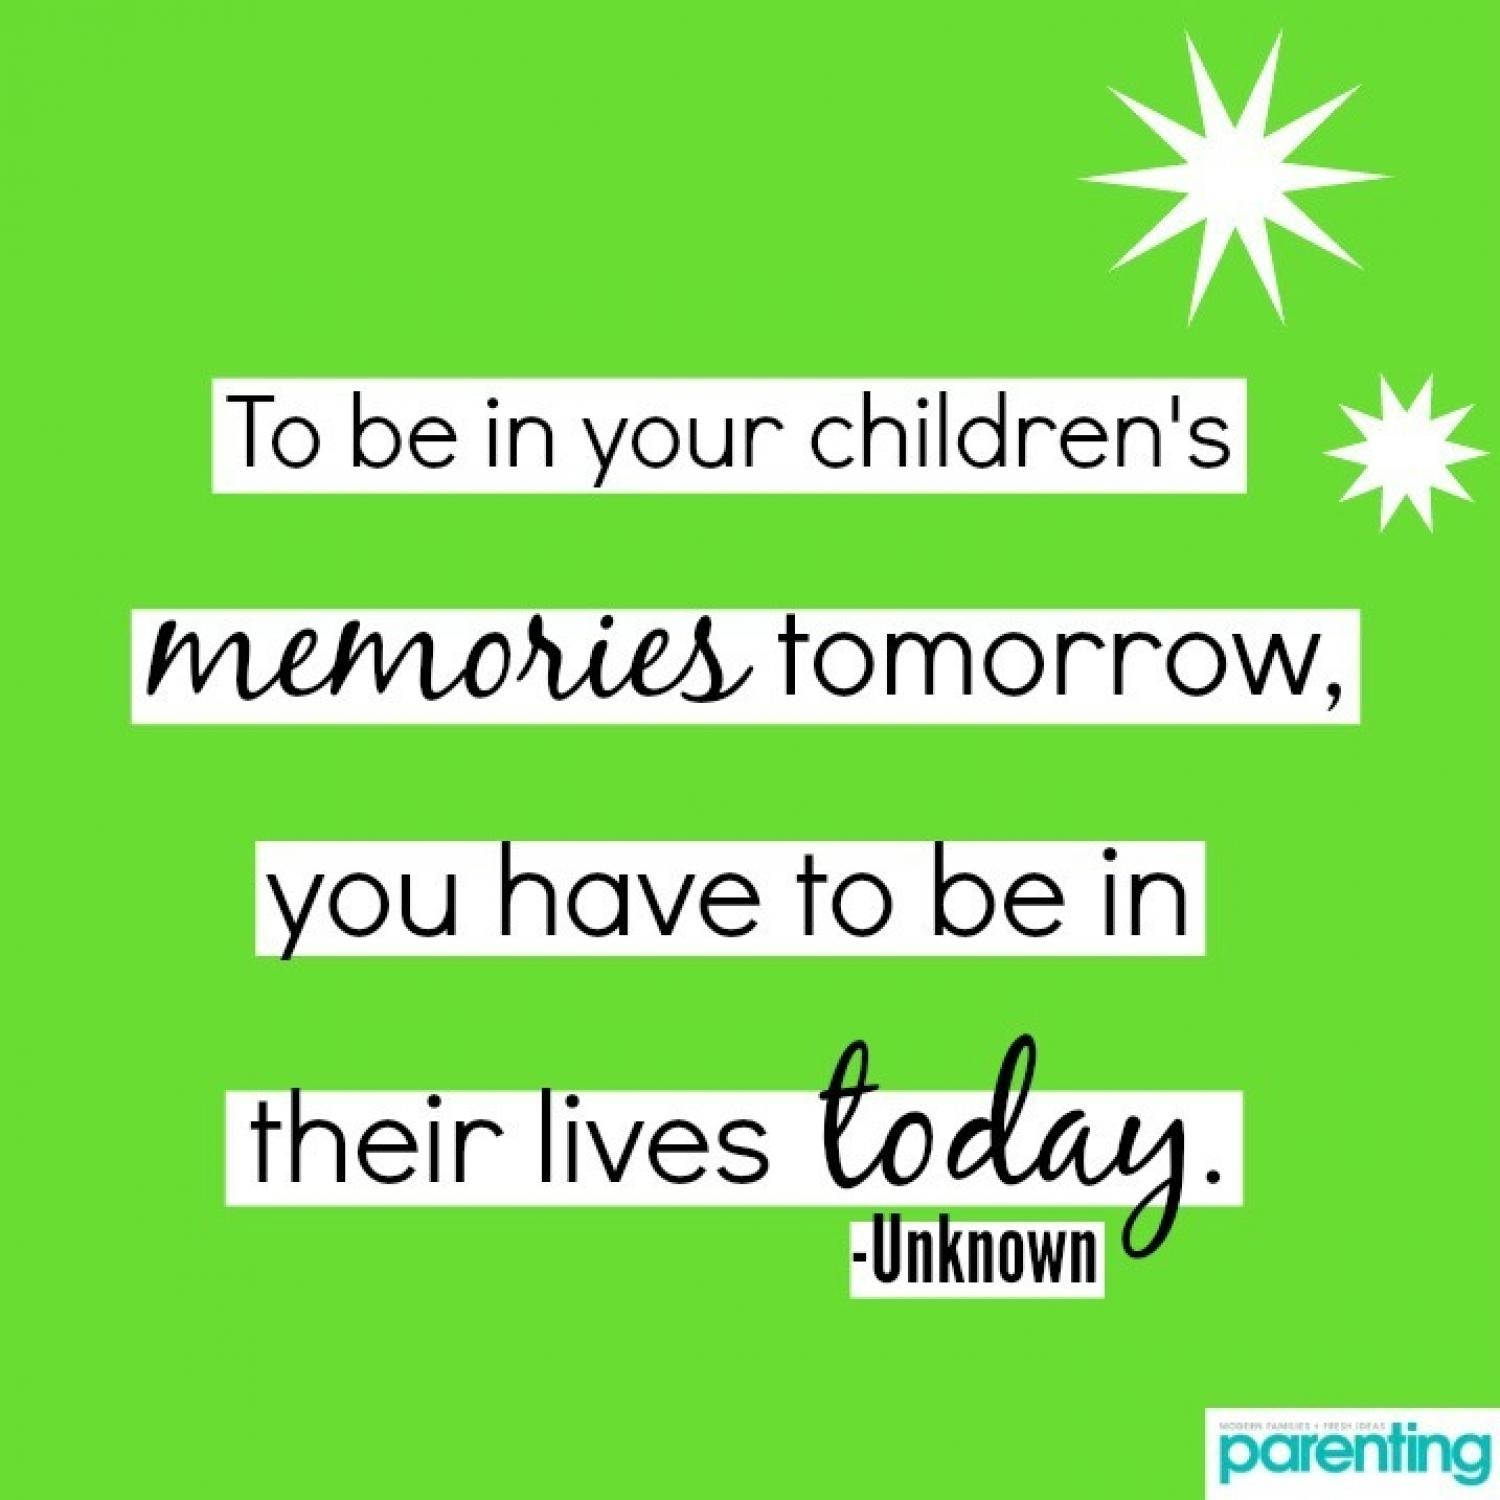 Amazing Quotes 17 Amazing Parenting Quotes That Will Make You A Better Parent